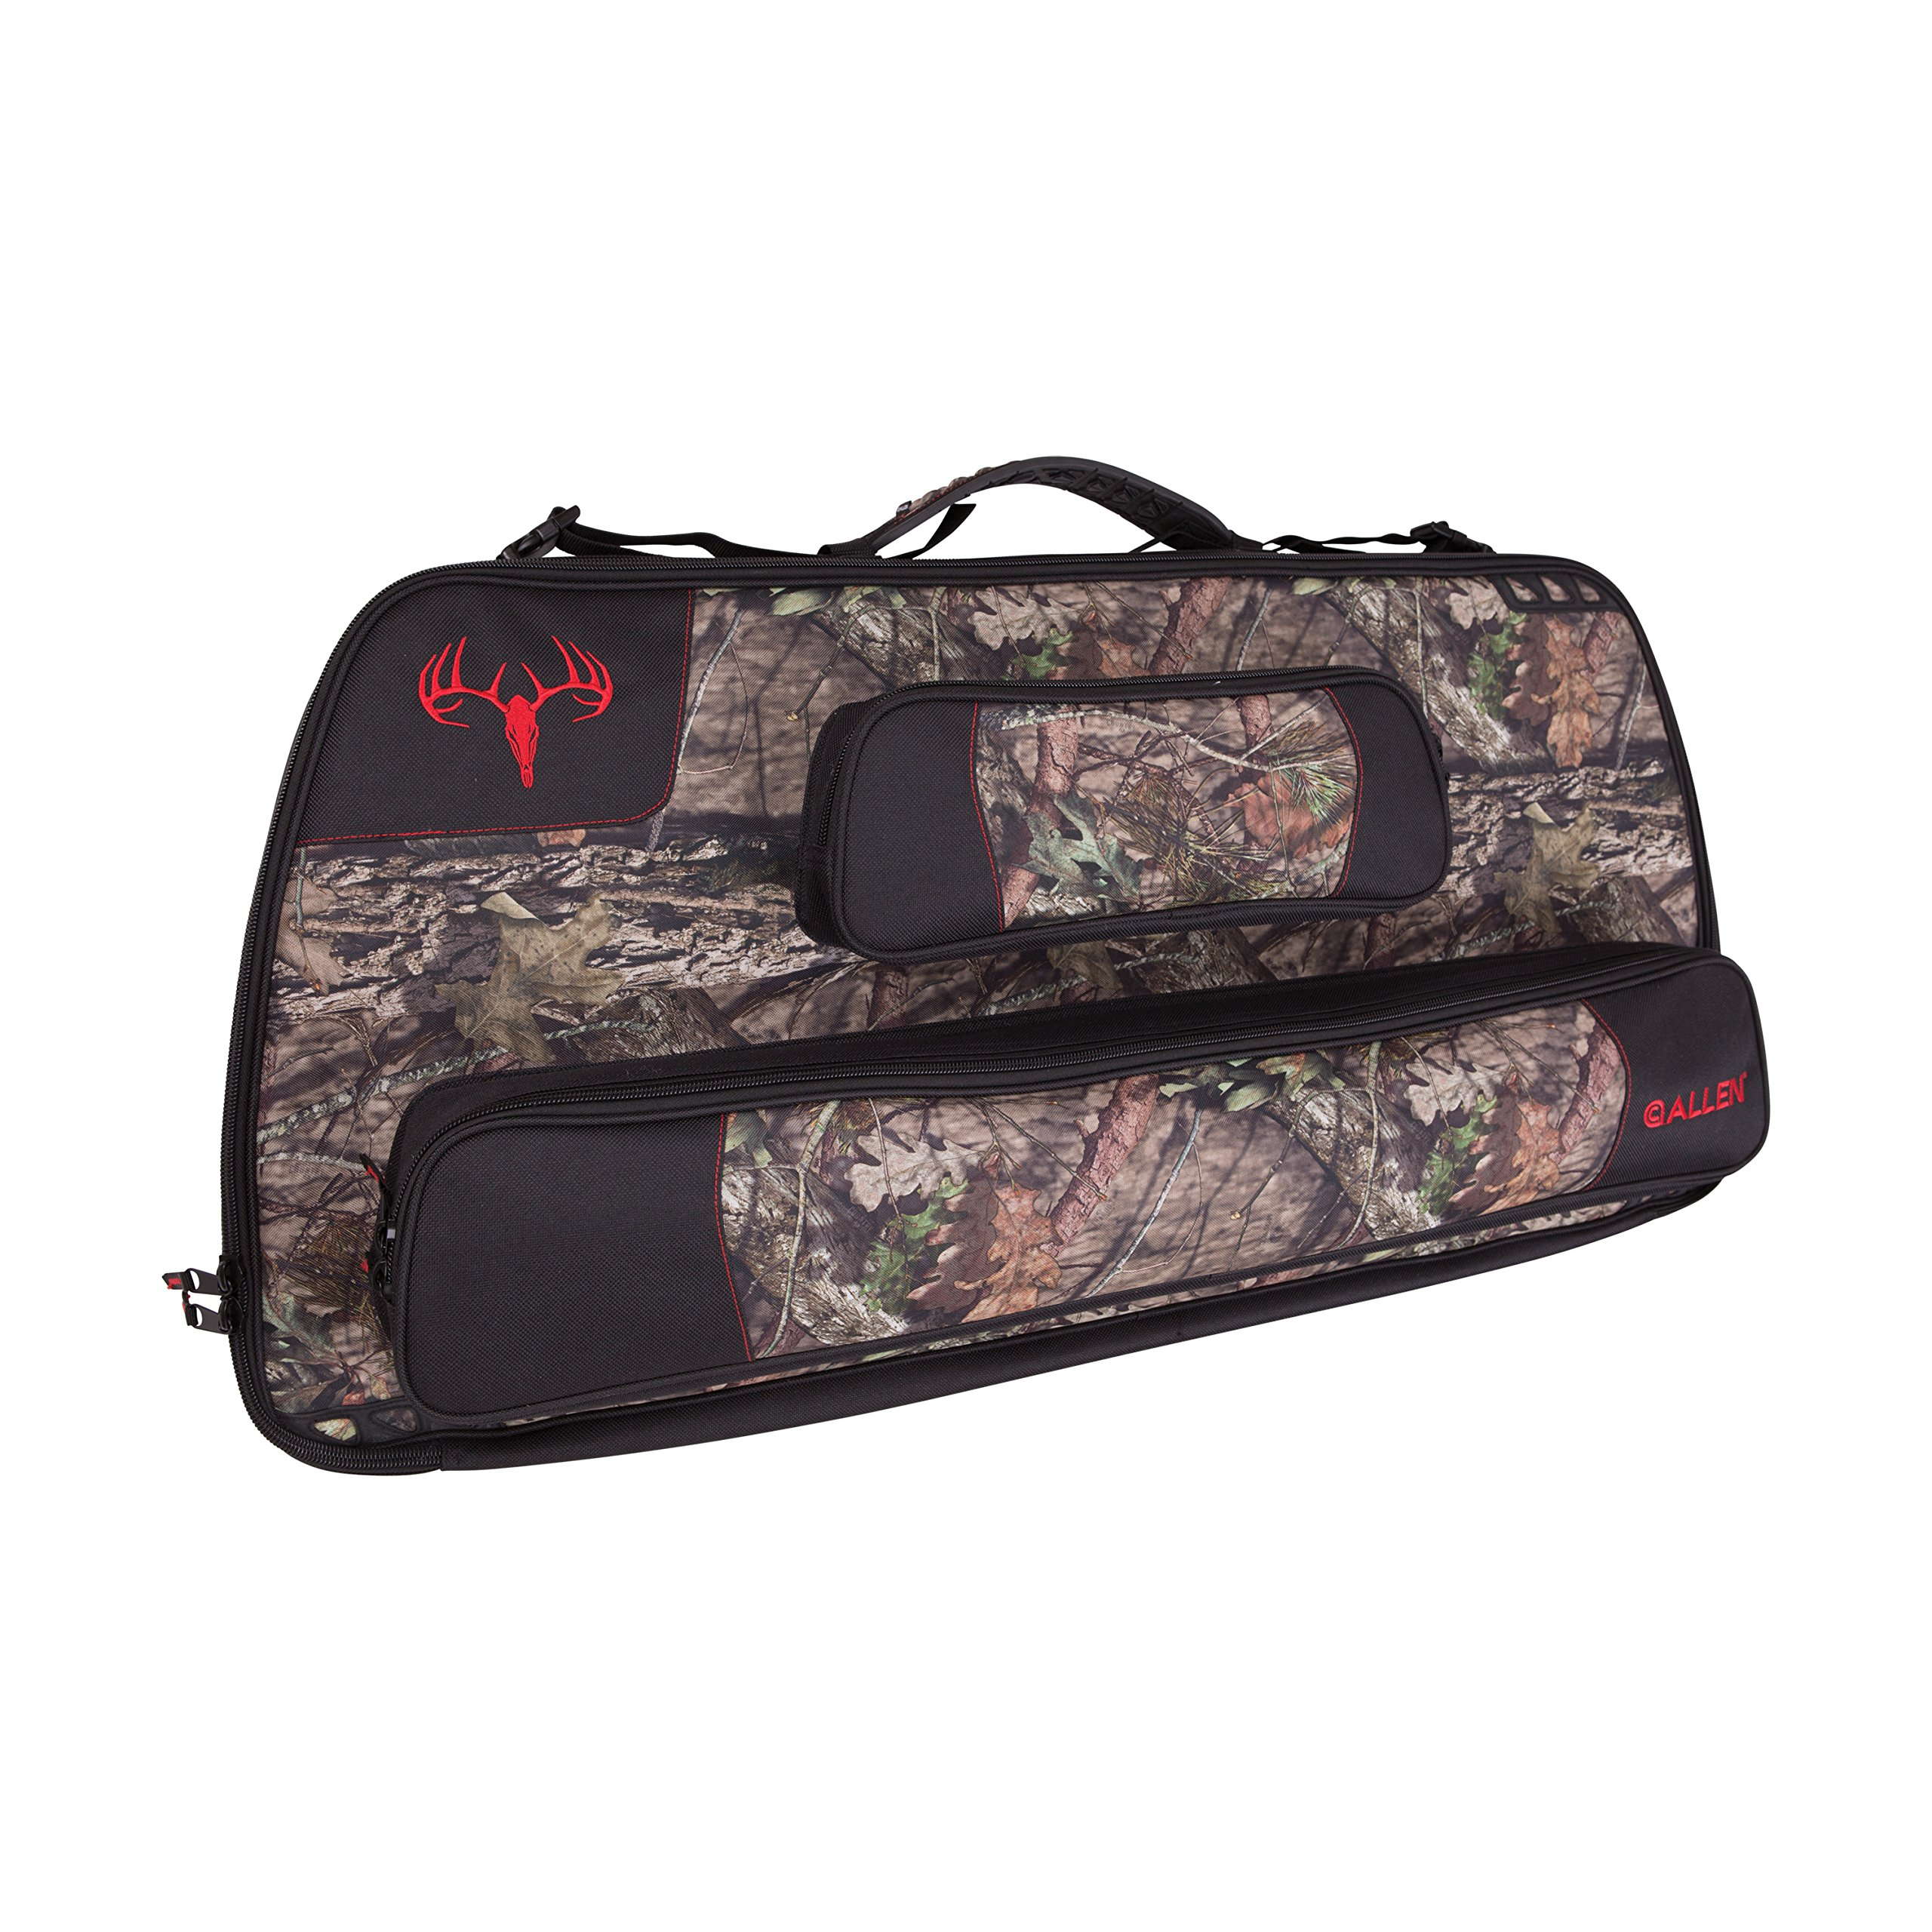 Allen Baktrak Connect Bow Case with Convertible Bow Sling, Mossy Oak Break-Up Country, 42''